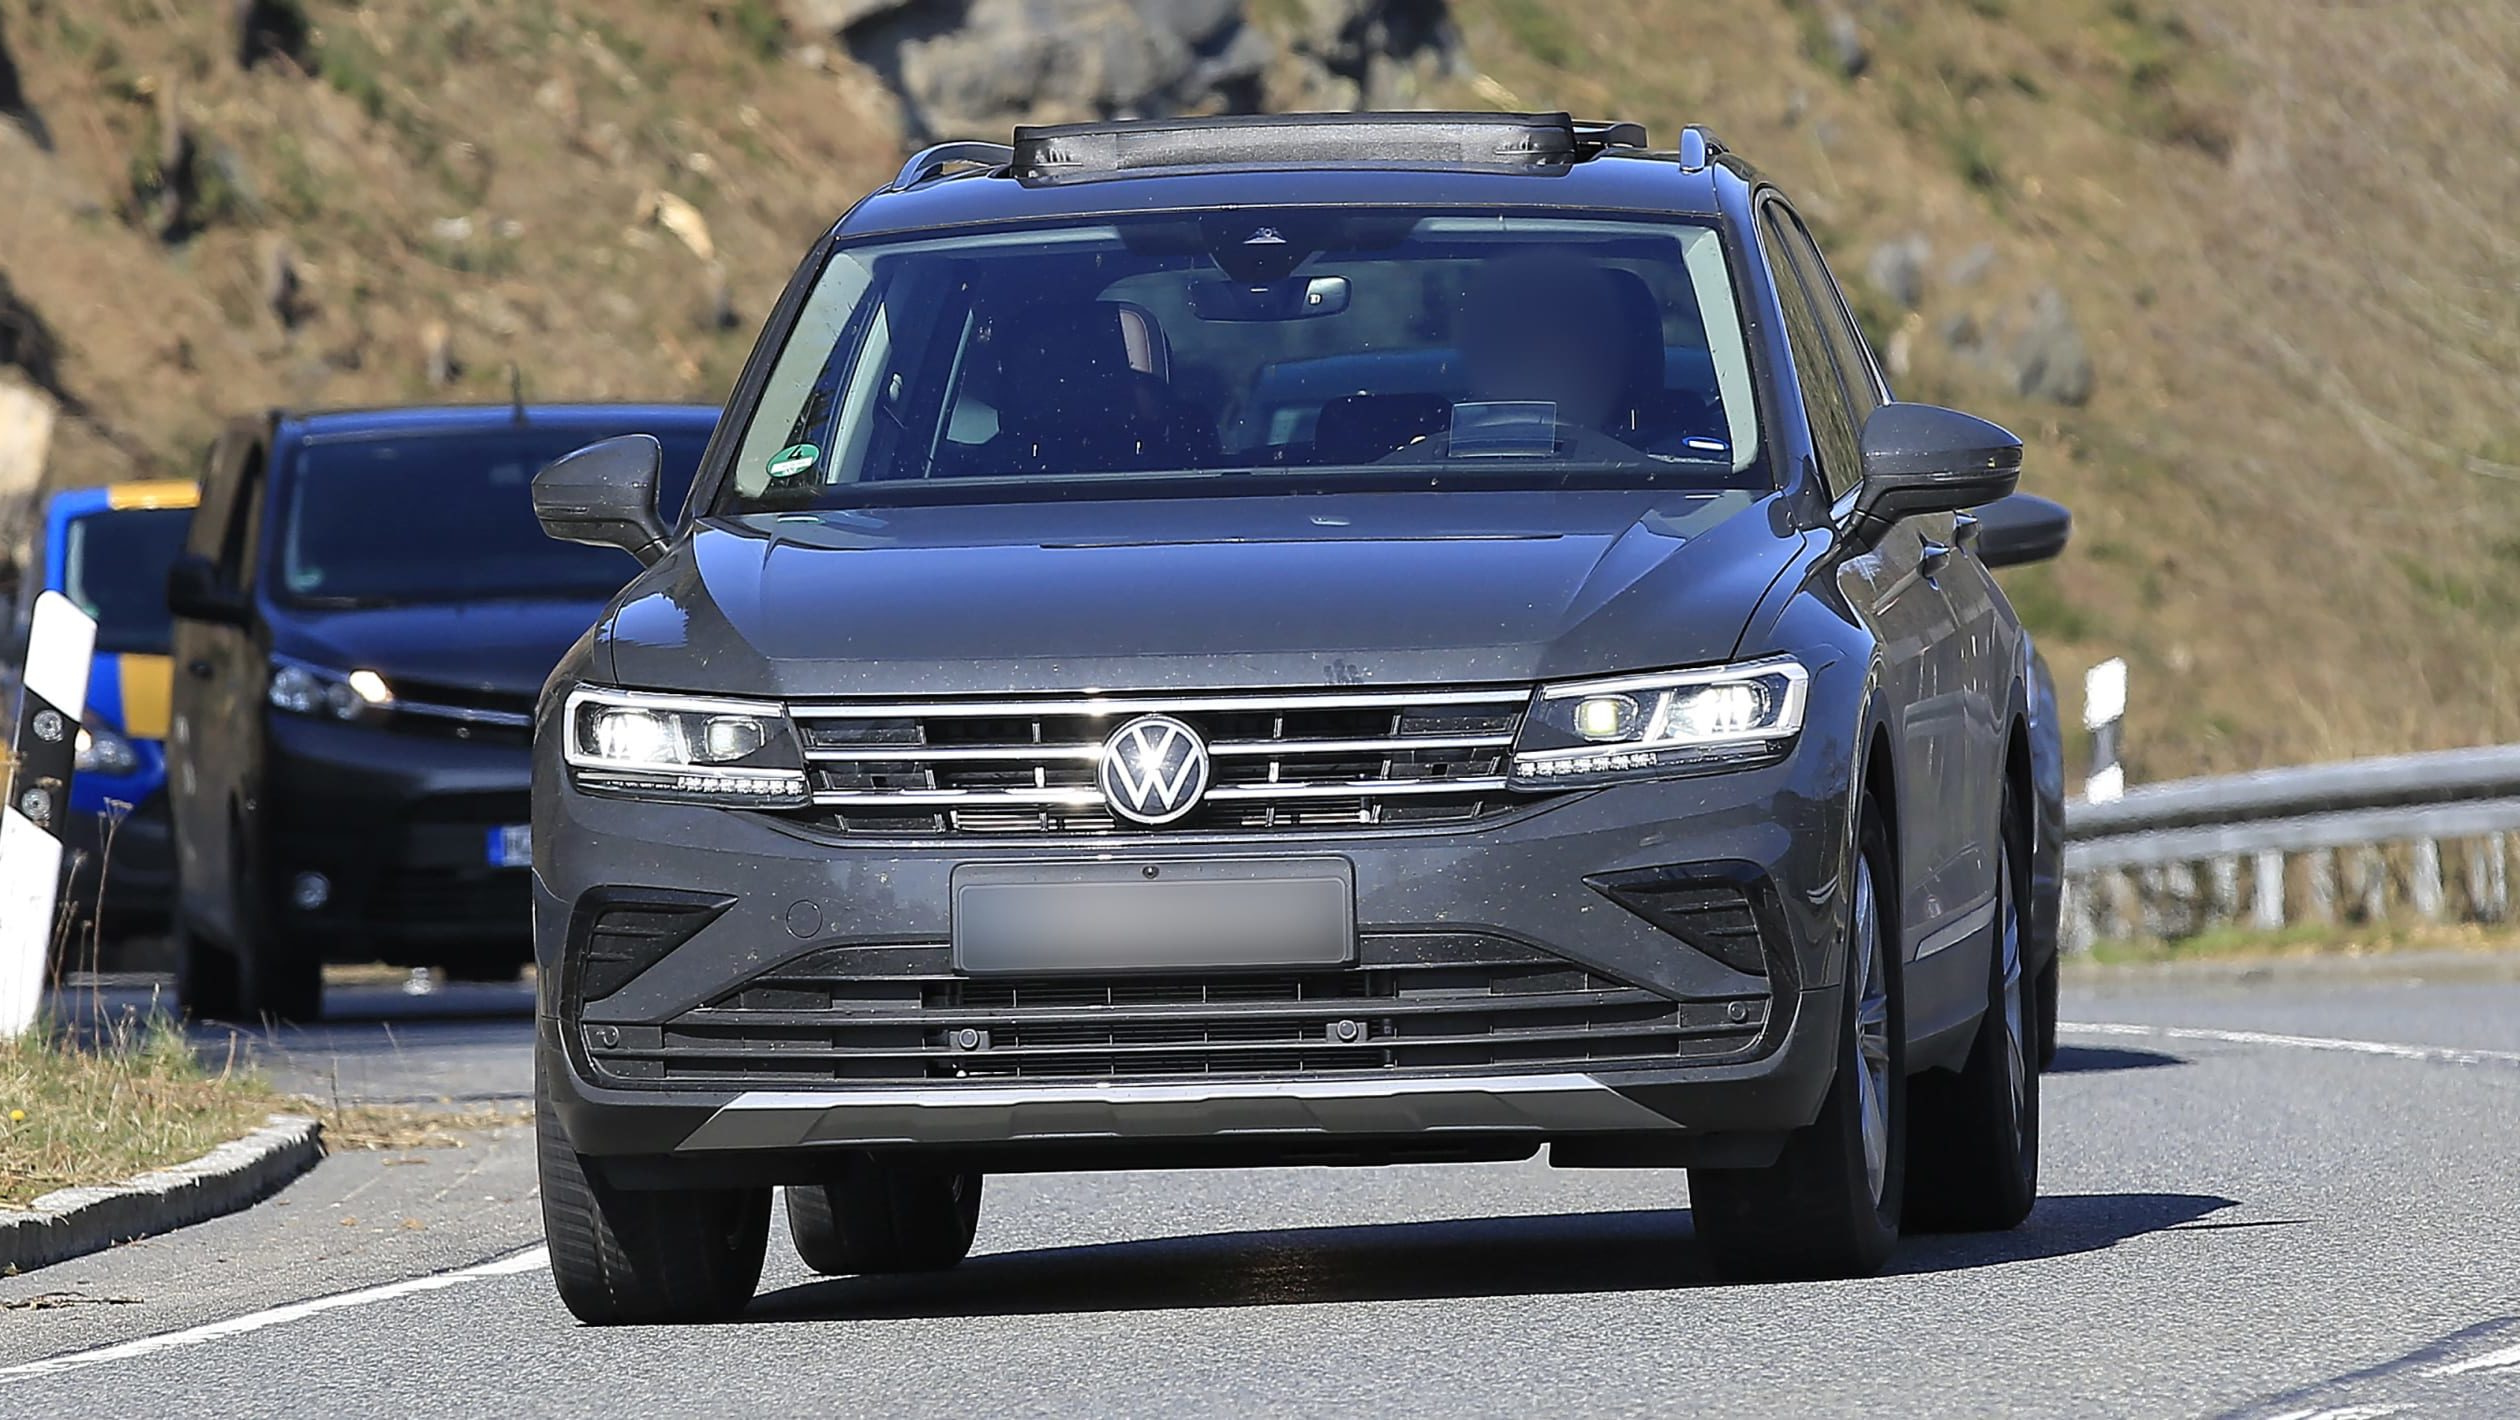 2021 Volkswagen Tiguan Spied On The Road! - Somag News